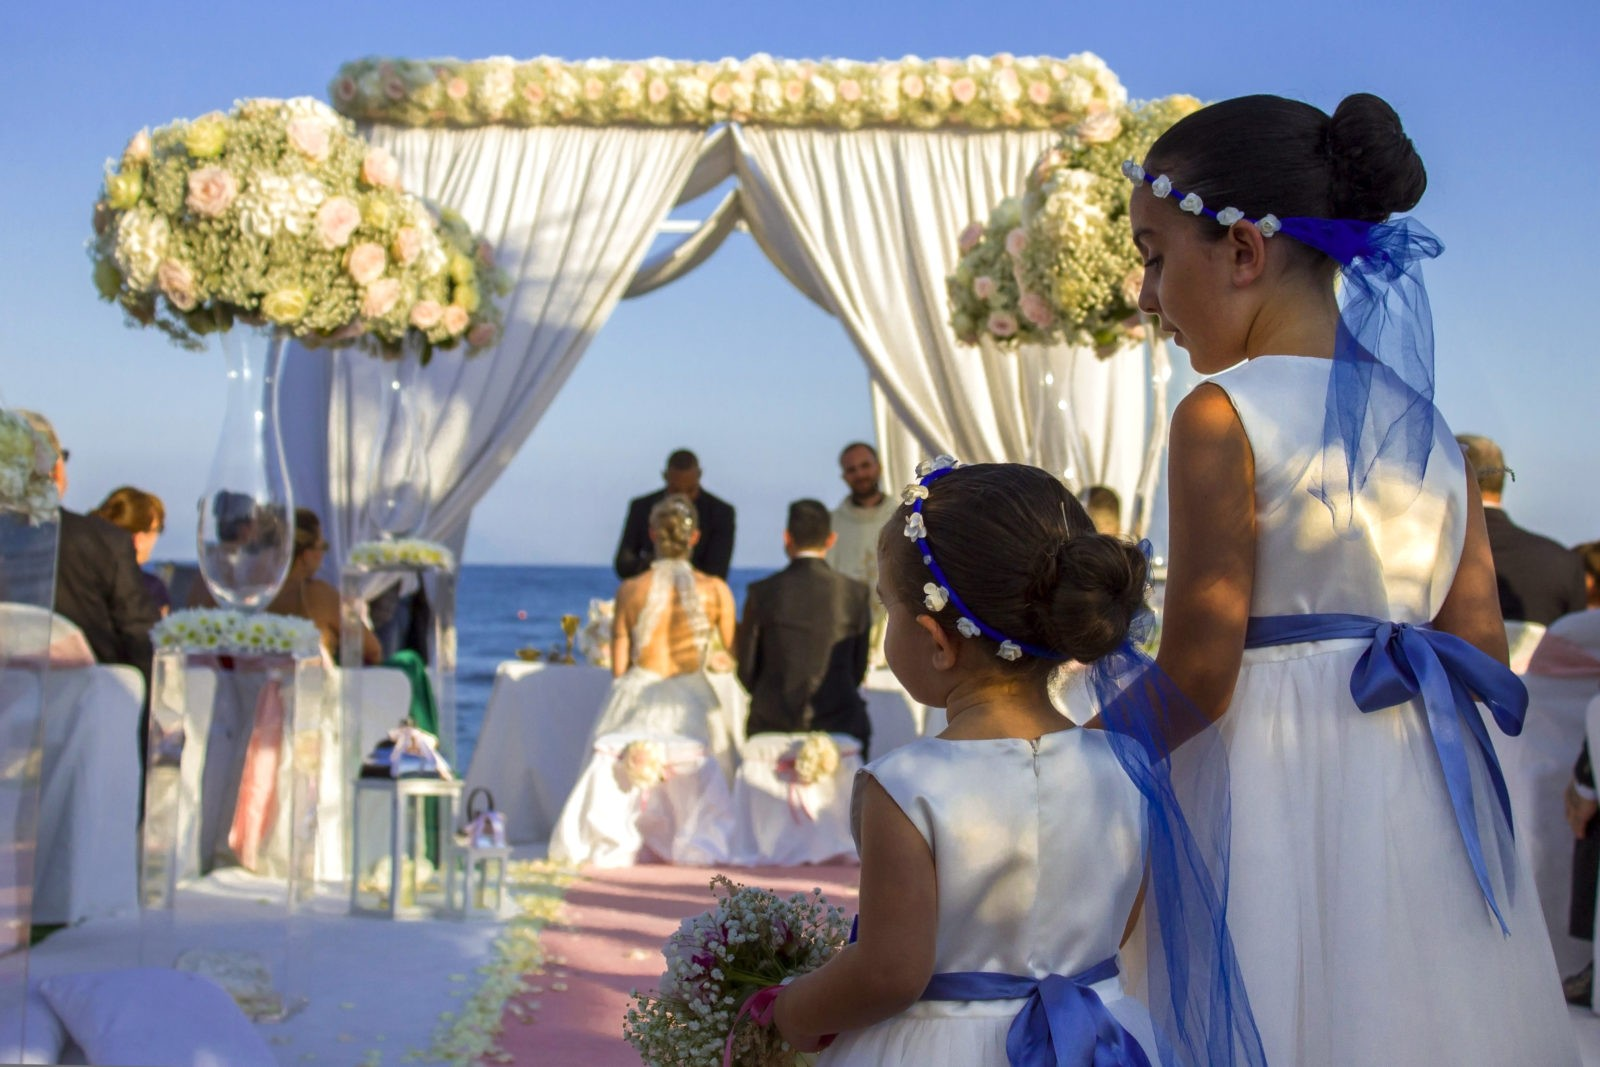 kora events, kora beacj events, kora events beach wedding, kora events location campania, kora events matrimoni campania, matrimonio campania, wedding campania, matrimonio napoli, sposi napoli